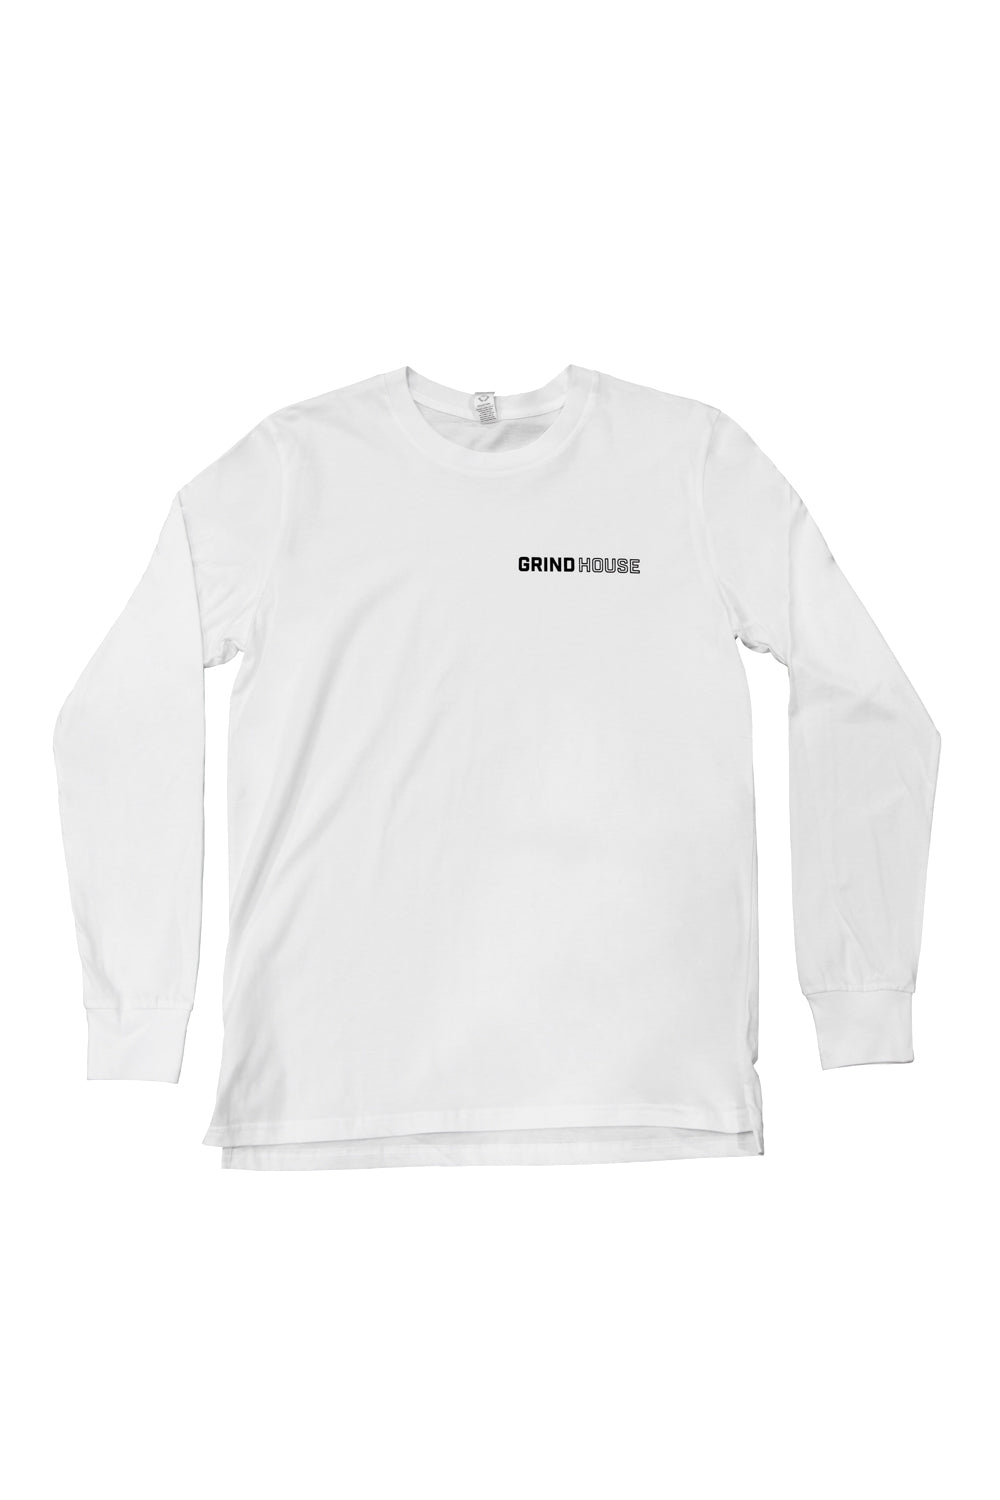 Buy Grindhouse Long Sleeve T-Shirt | Buy Grindhouse Merch Online